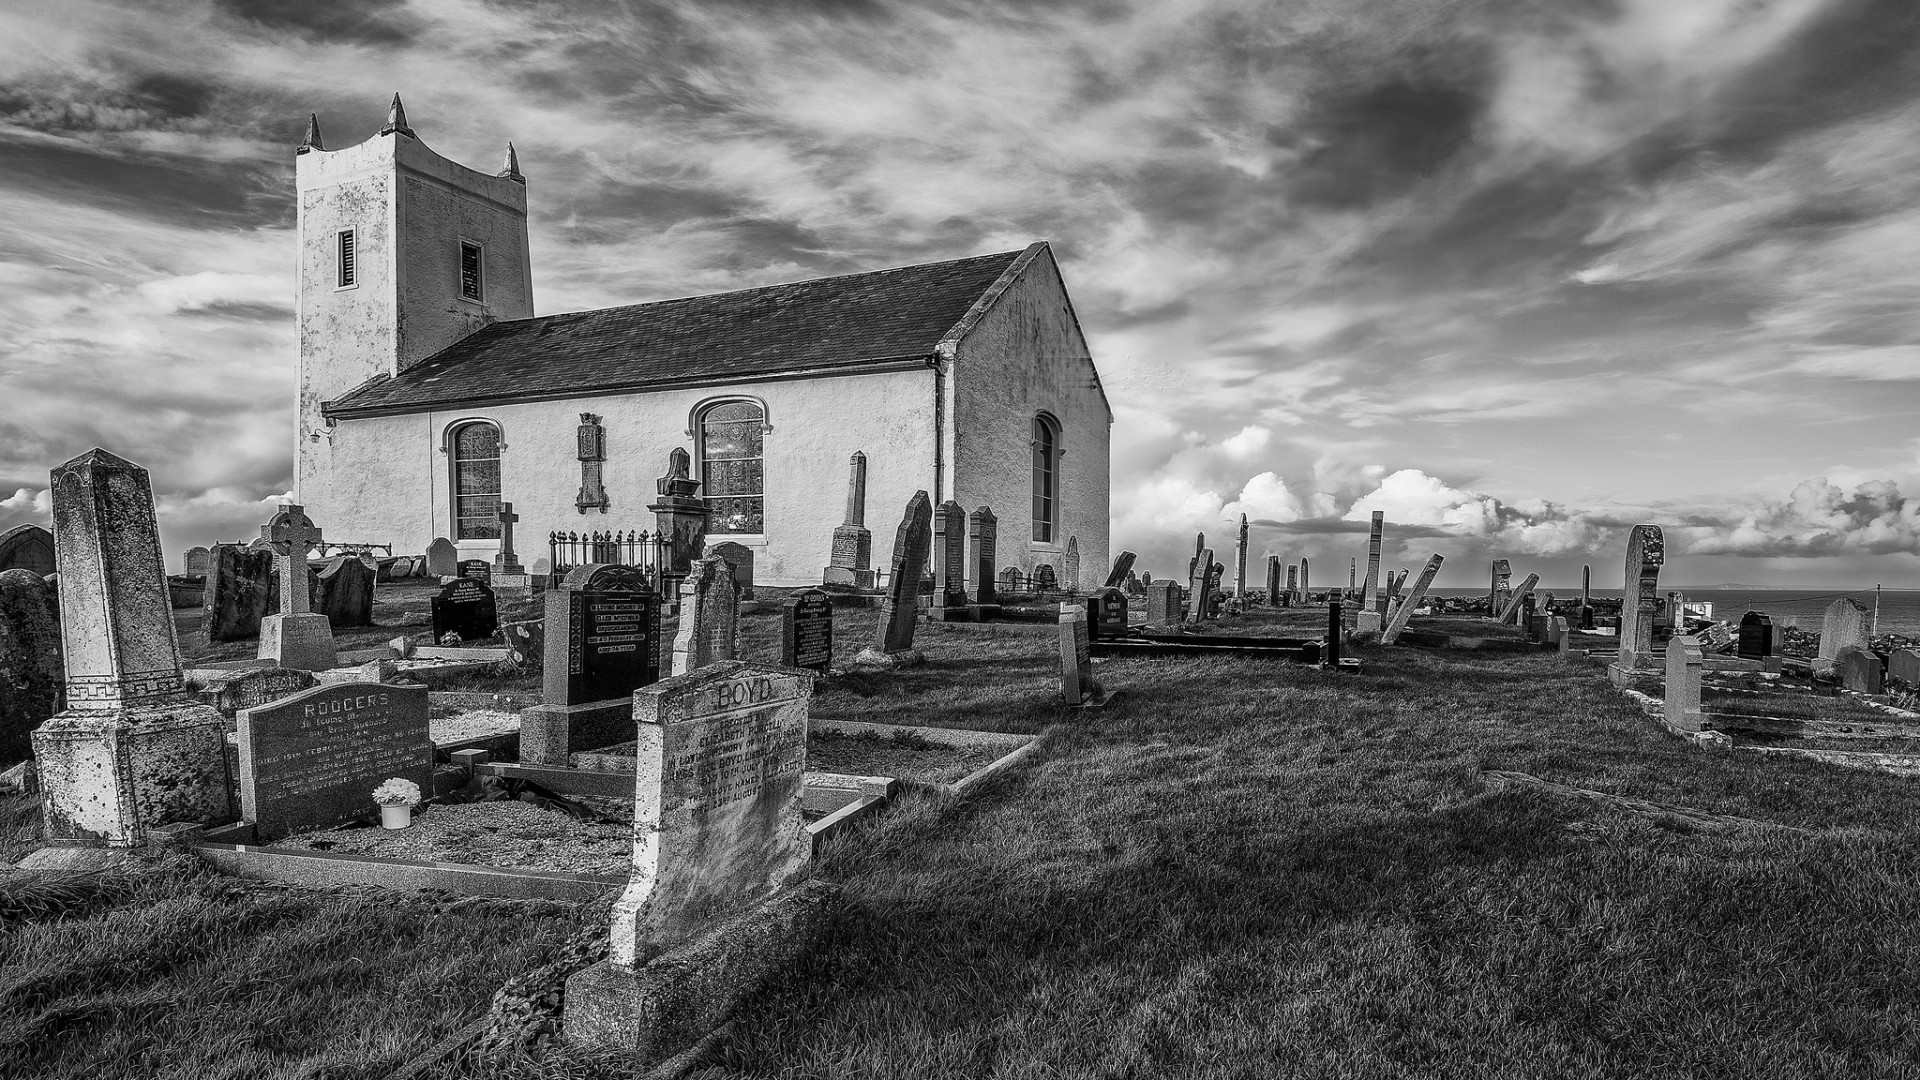 General 1920x1080 architecture monochrome grass clouds church cemetery grave England UK cross HDR old